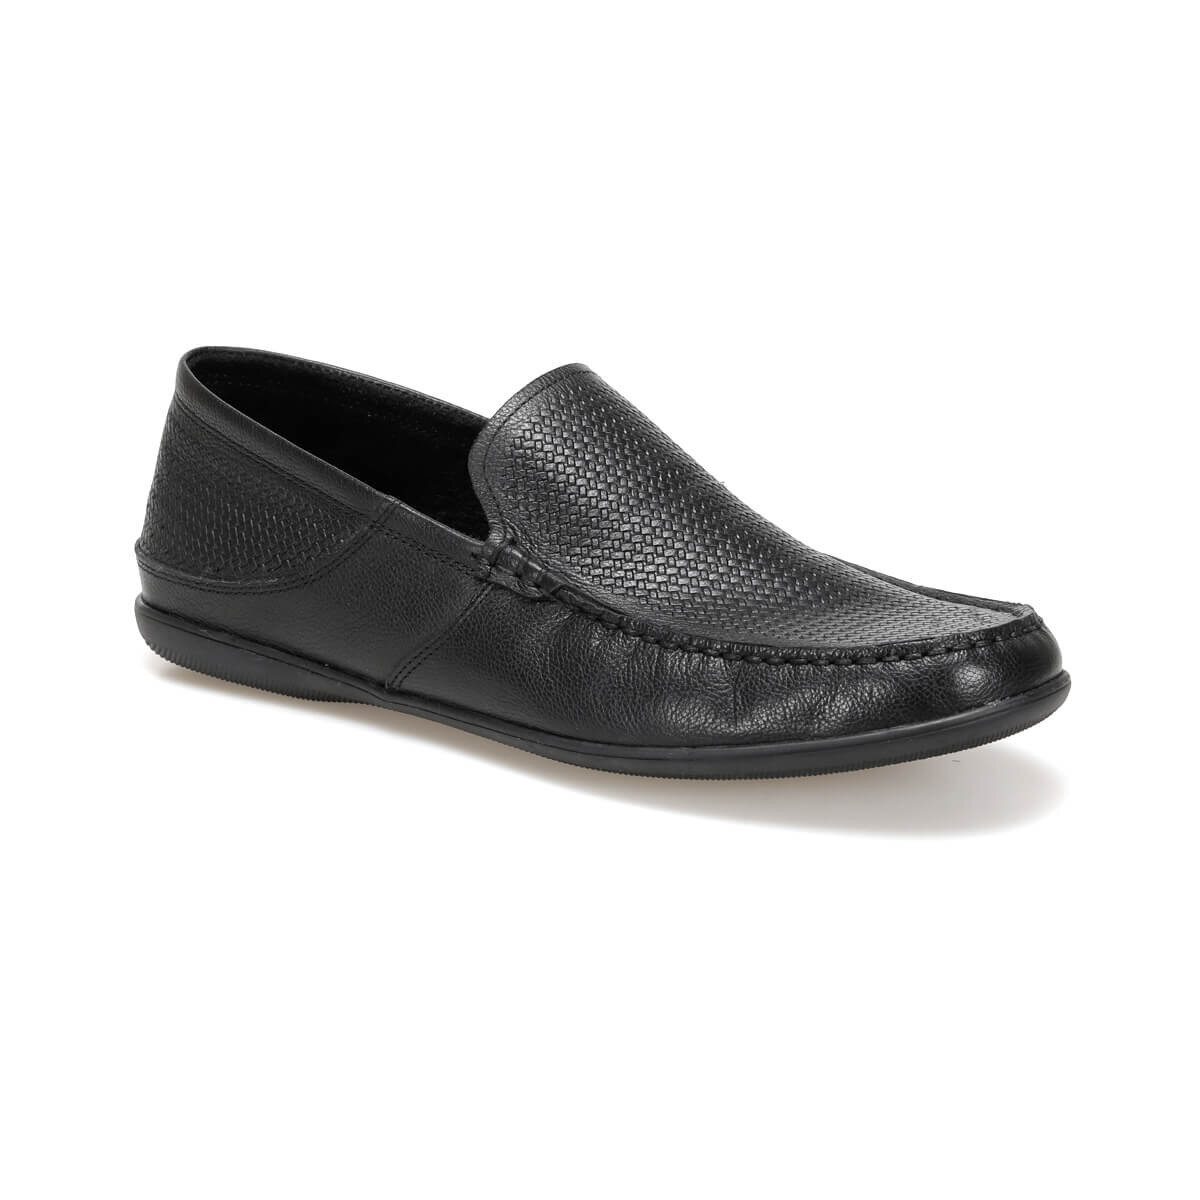 FLO GZL-50-1 Black Male Shoes Flogart